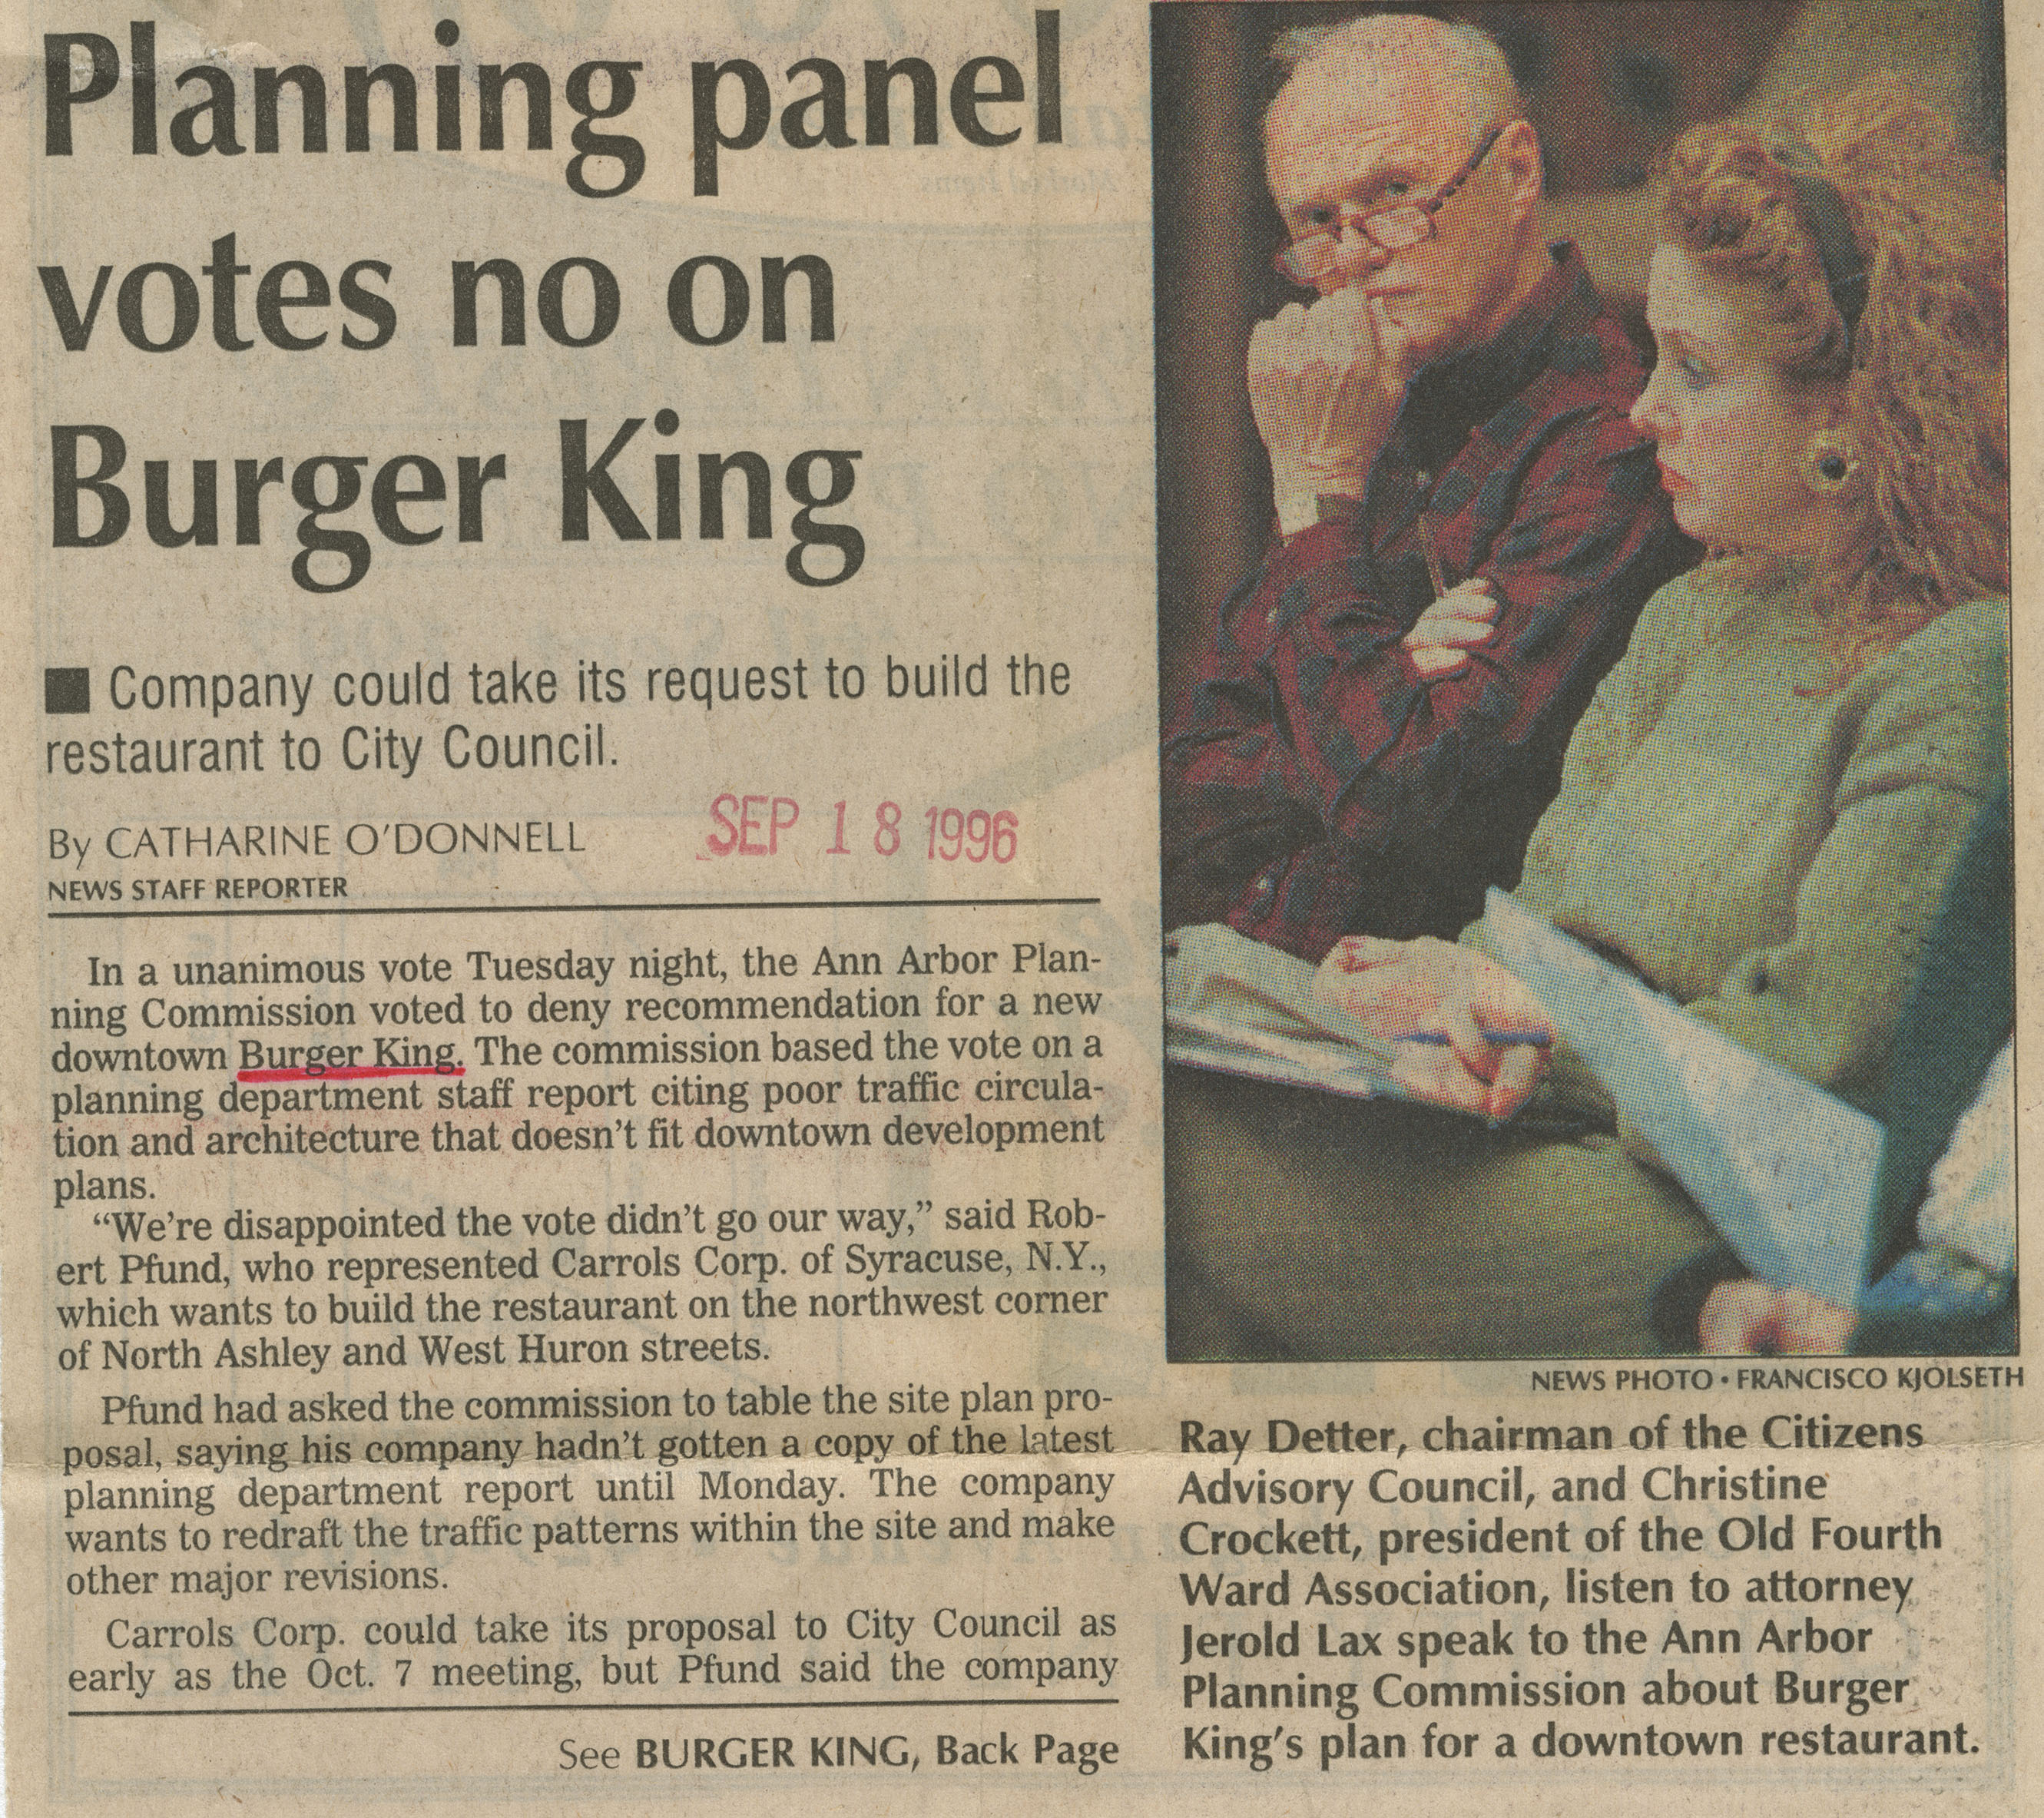 Planning panel votes no on Burger King image